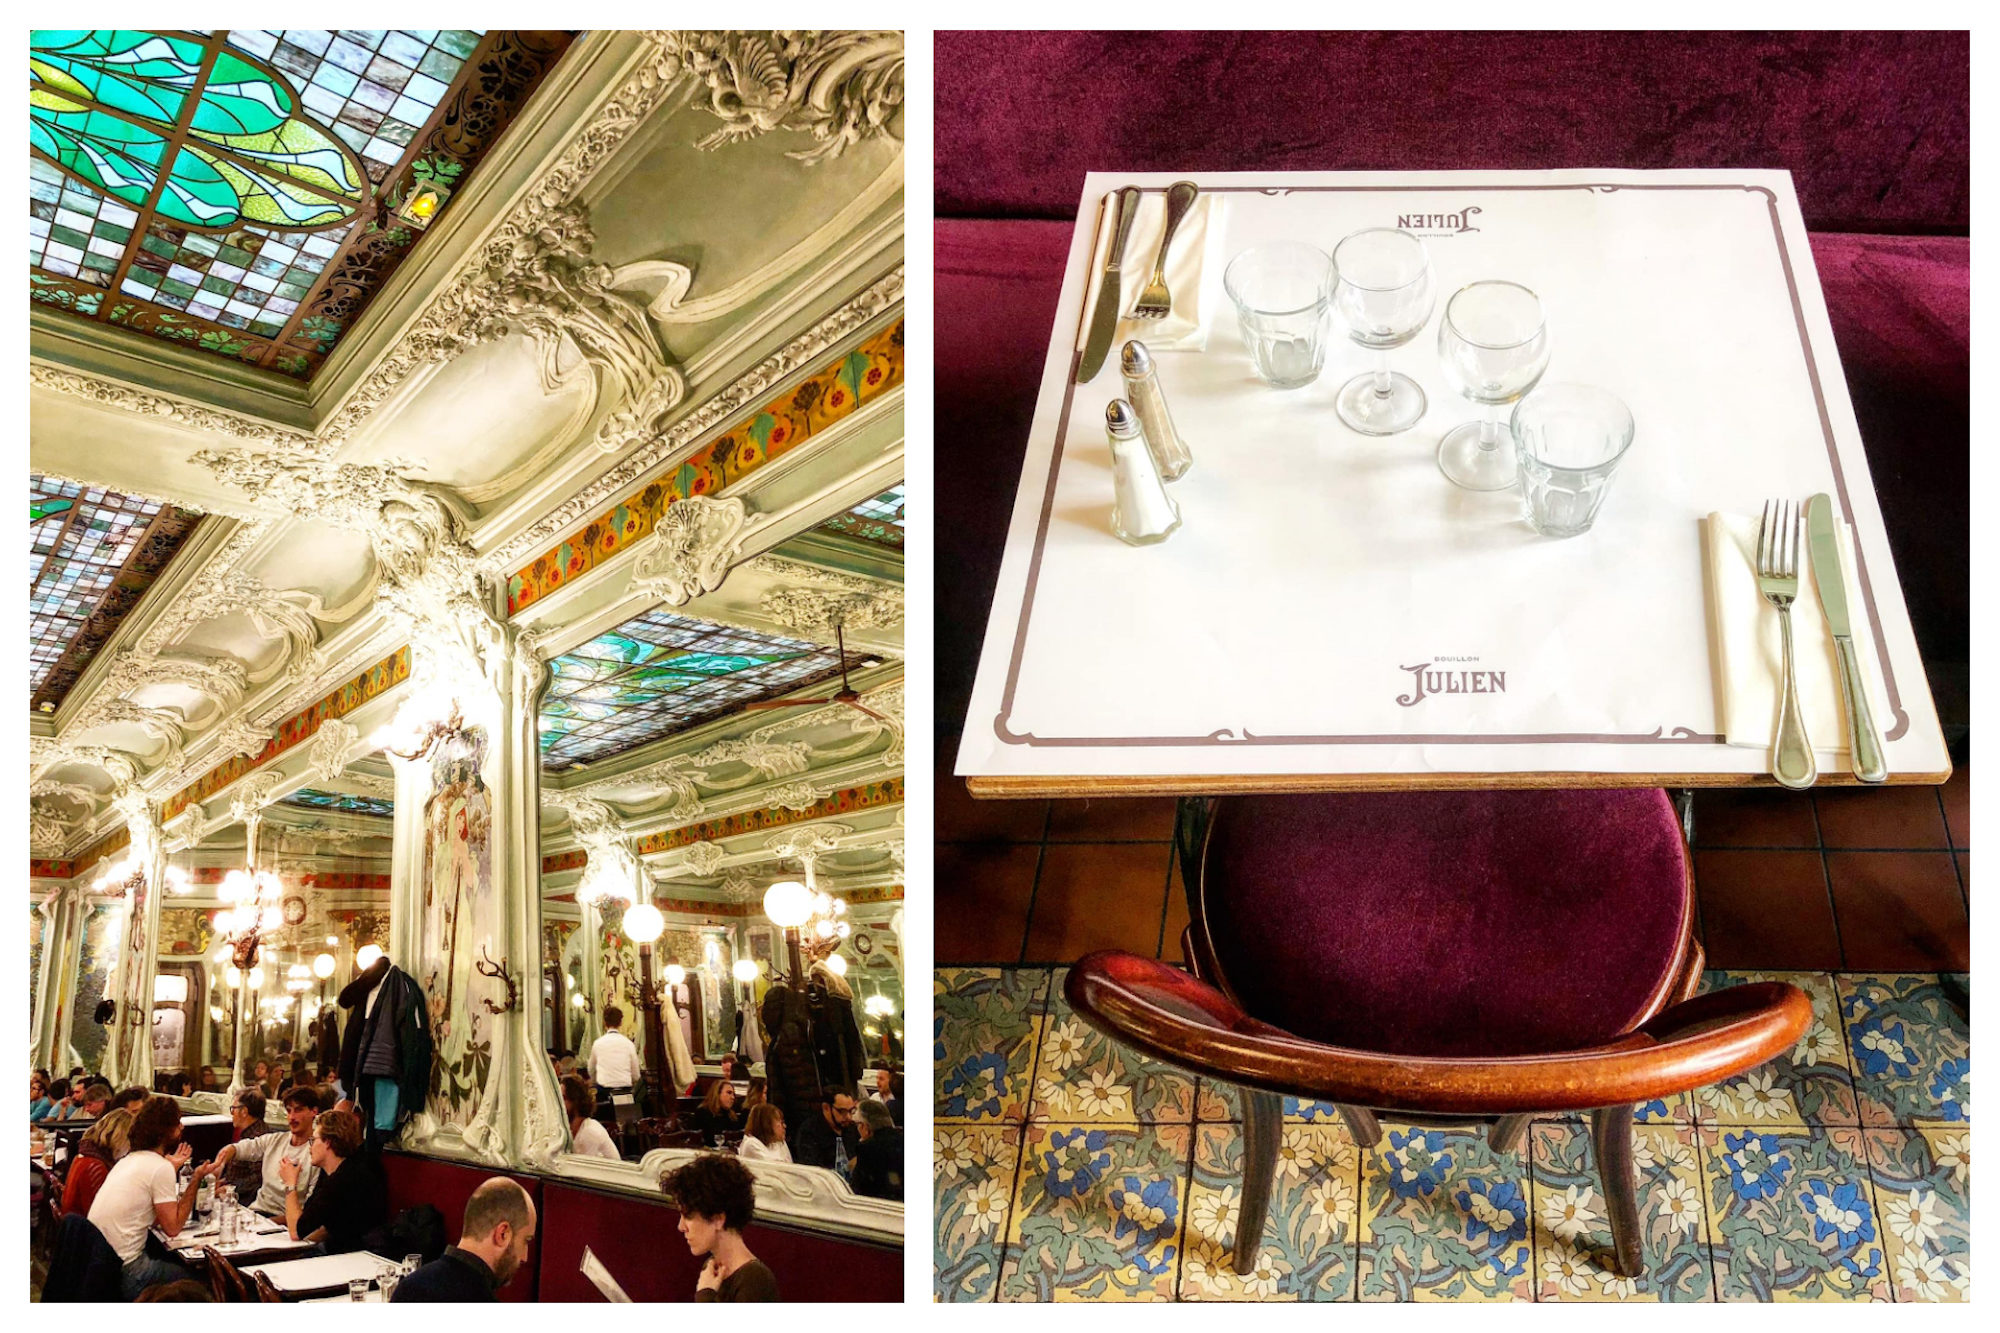 The ornate moldings and stained glass ceiling (left) and stylish bistro table and chair on original period tiles (right) at Bouillon Julien restaurant Paris.